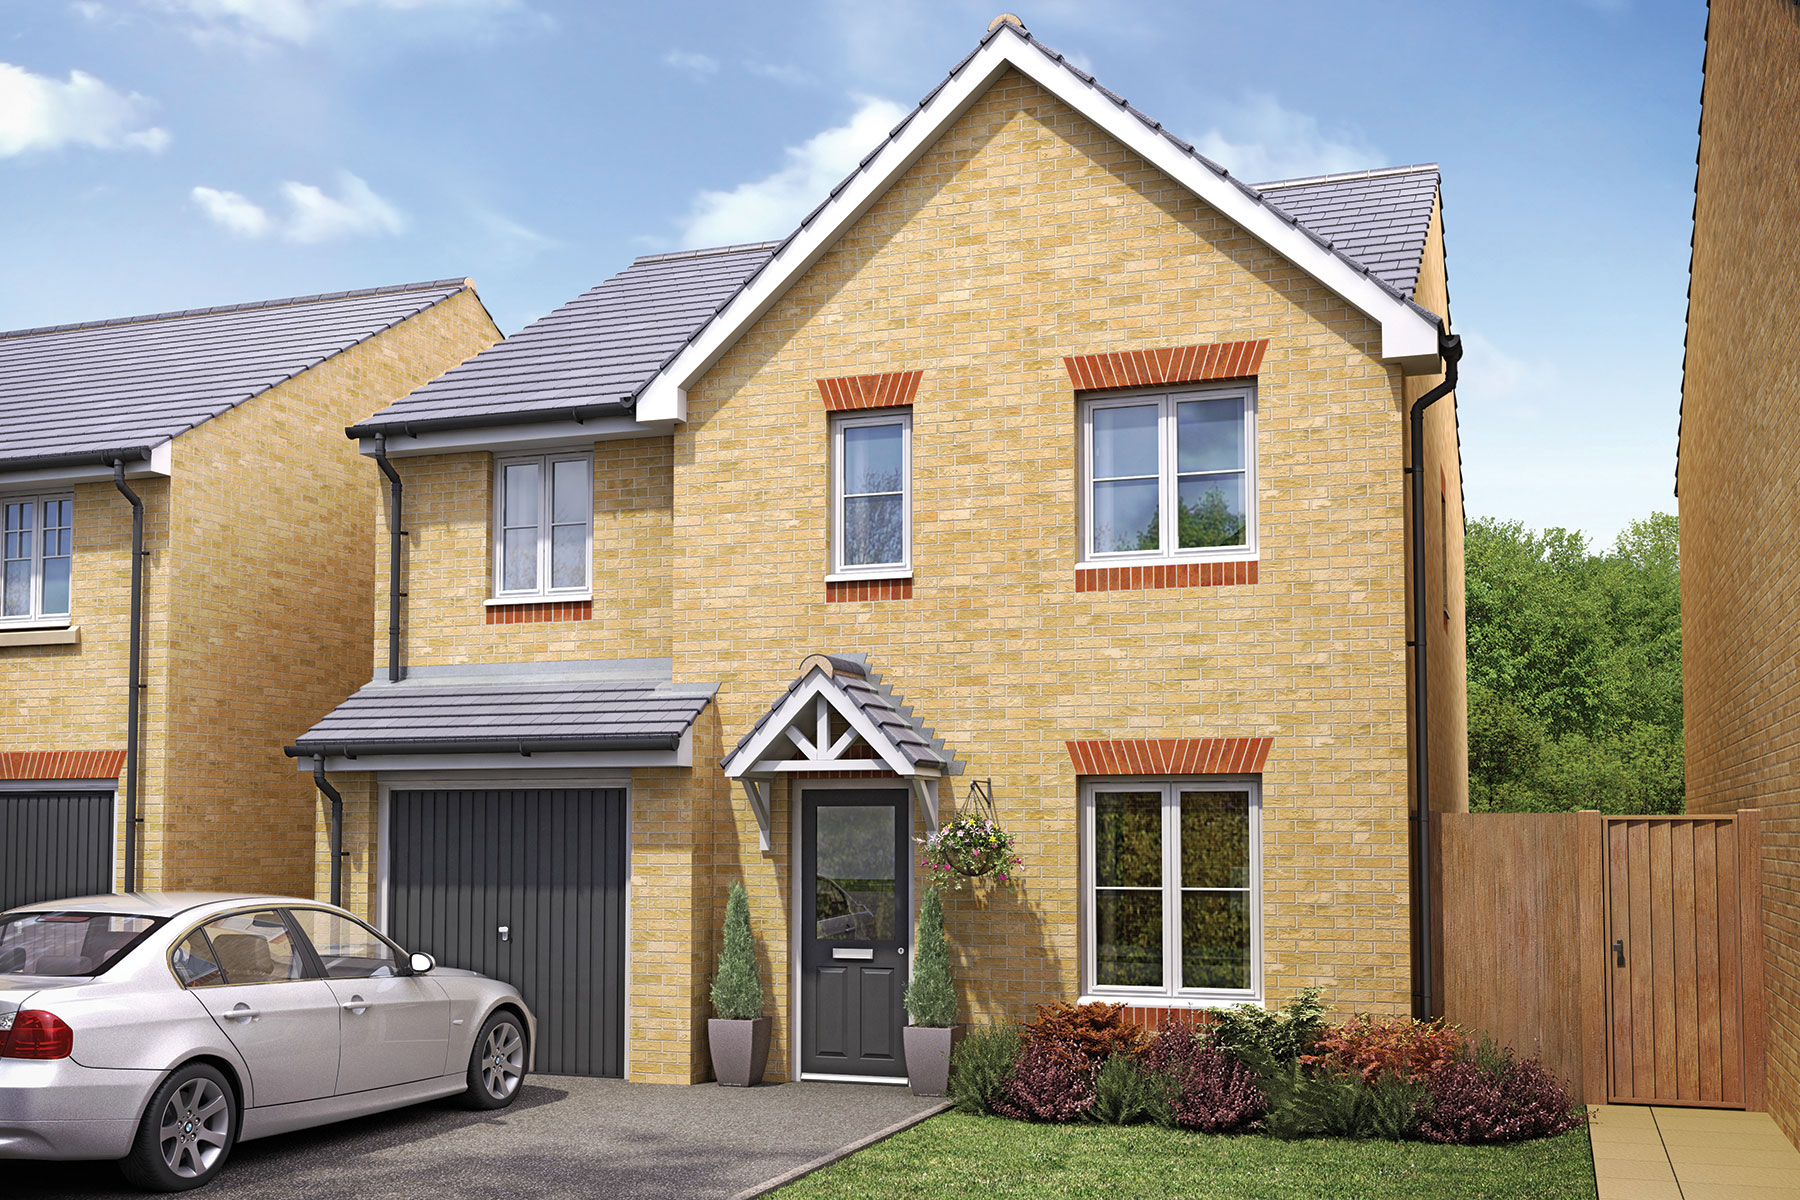 Taylor Wimpey - Exterior - The Bradenham - 4 bedroom new home